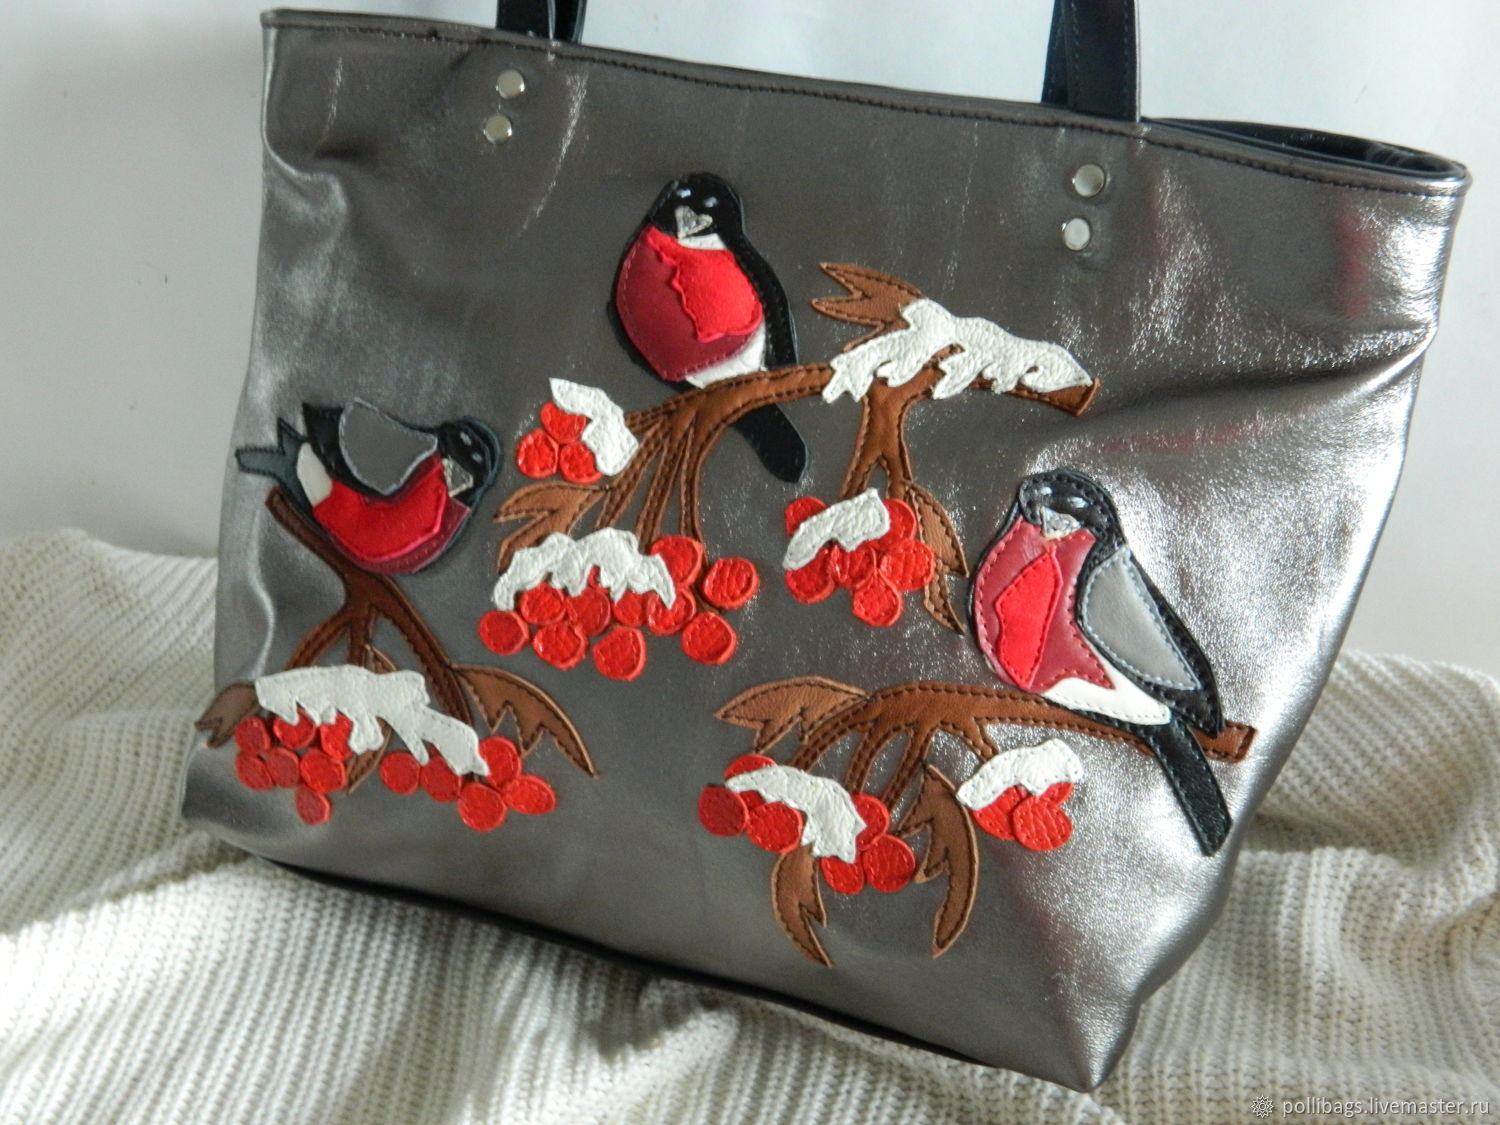 Leather bag shopper bag with applique hearts and a silver u shop